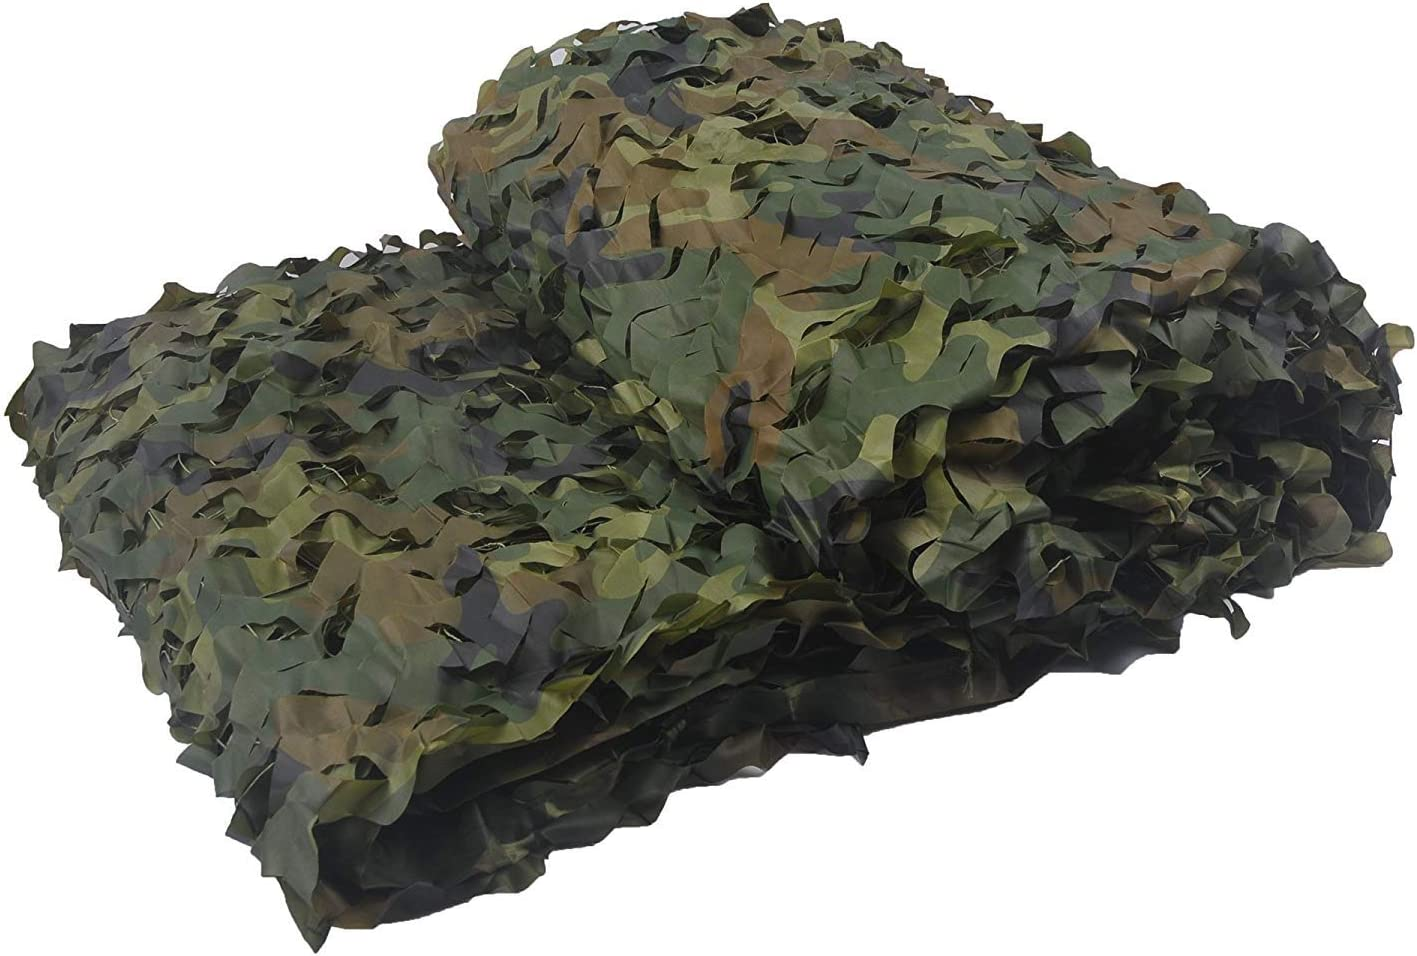 Safety and Jacksonville Mall trust LGLFDJ Camo Netting with Mesh 2m×3m Oxford Military Backing Cam